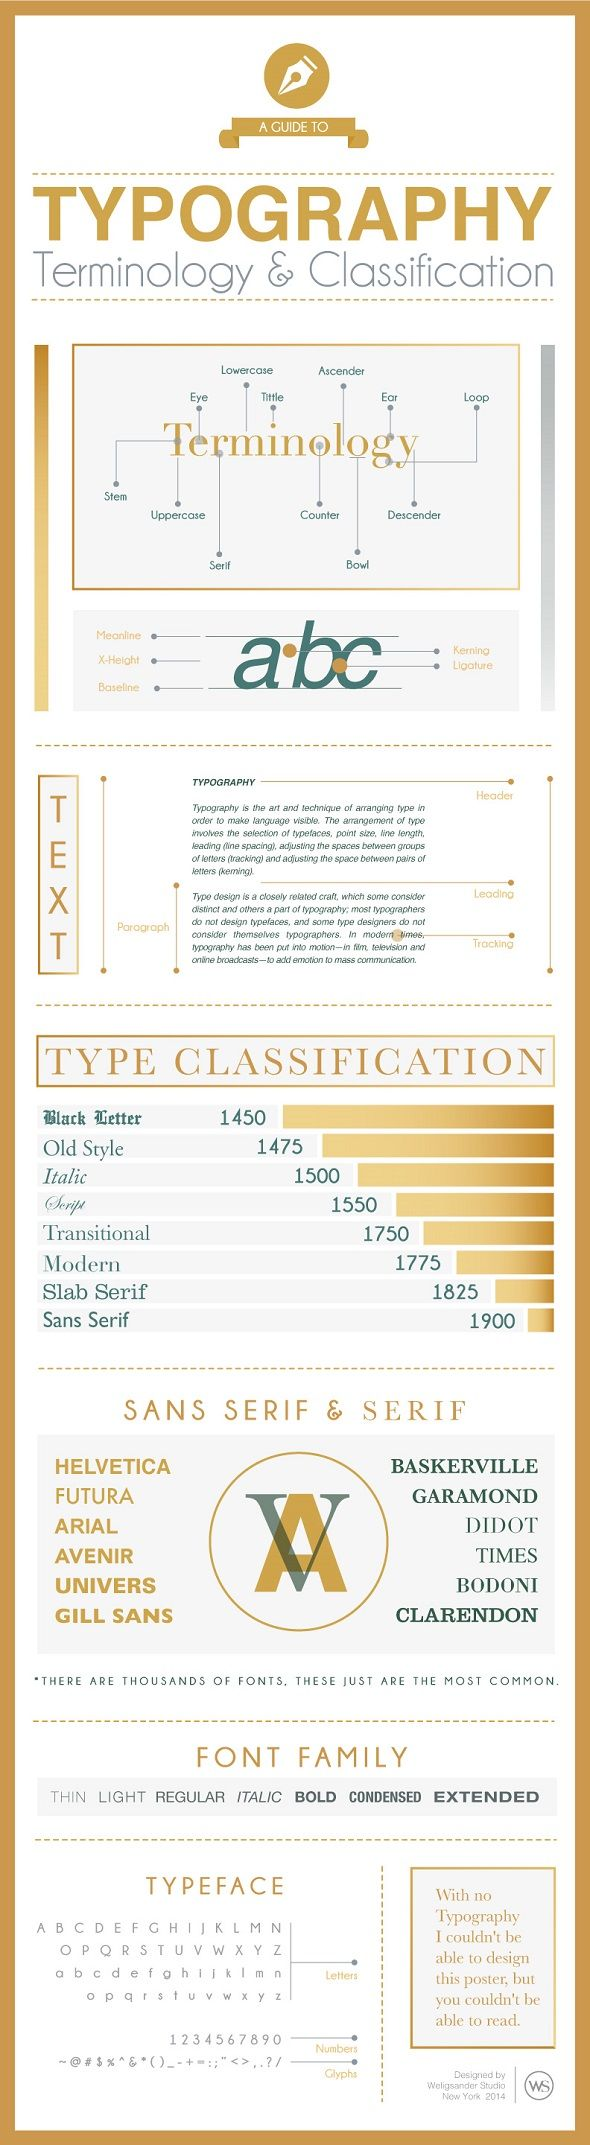 infotype-visually-learn-typography-1